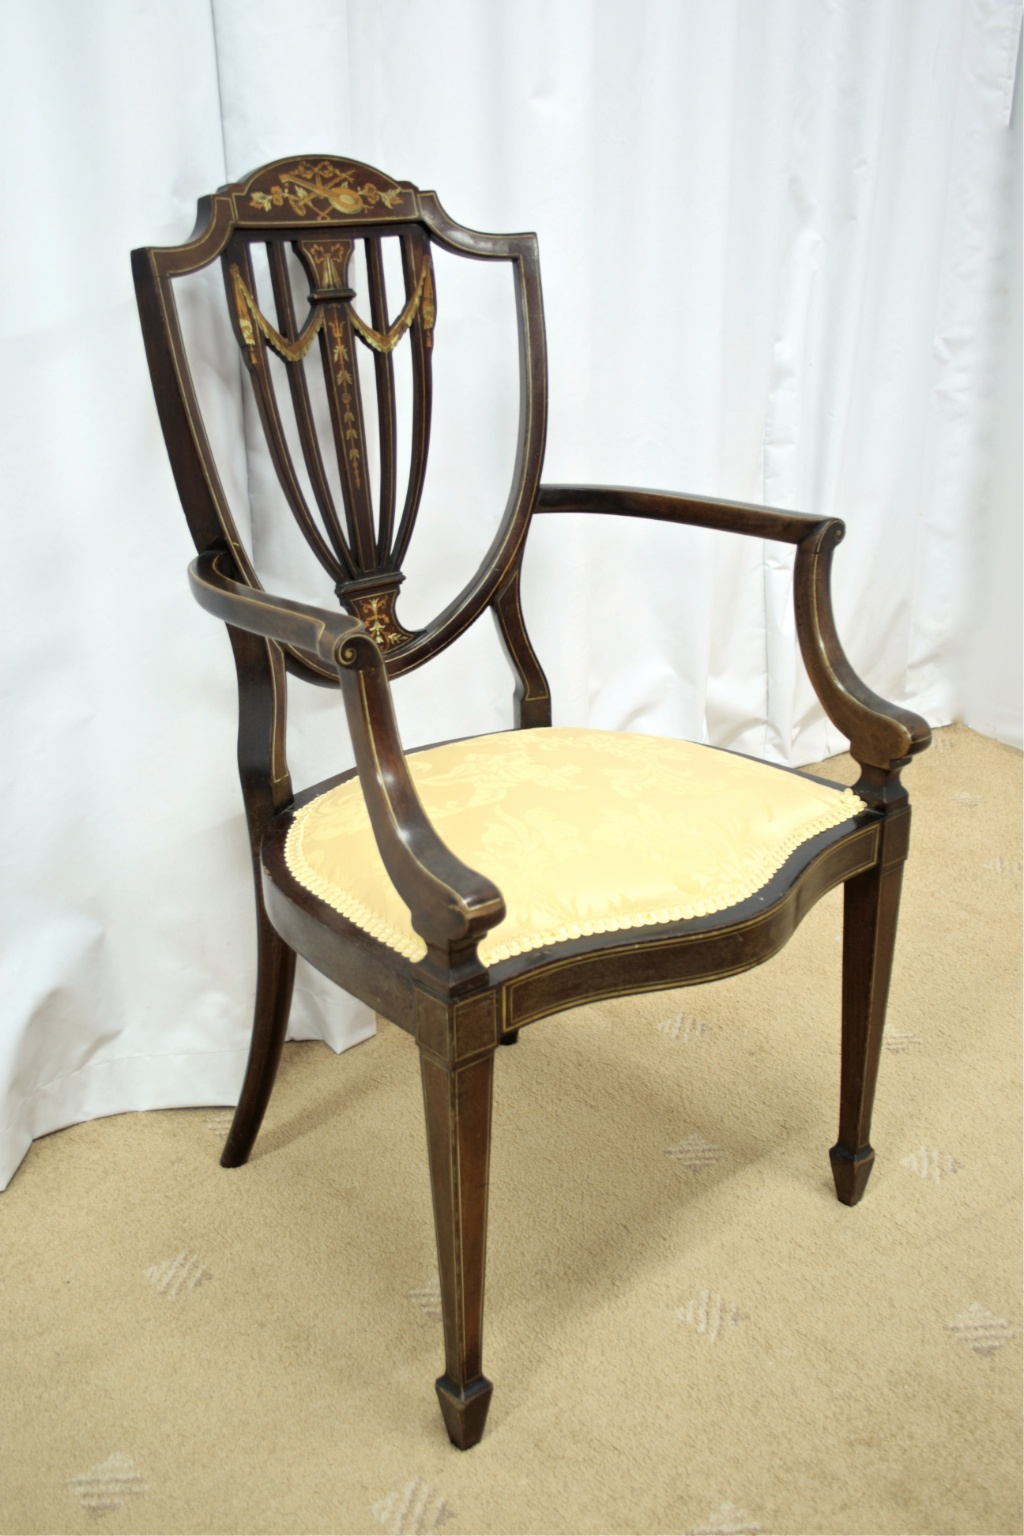 Edwardian Inlaid Bedroom Chair For Sale